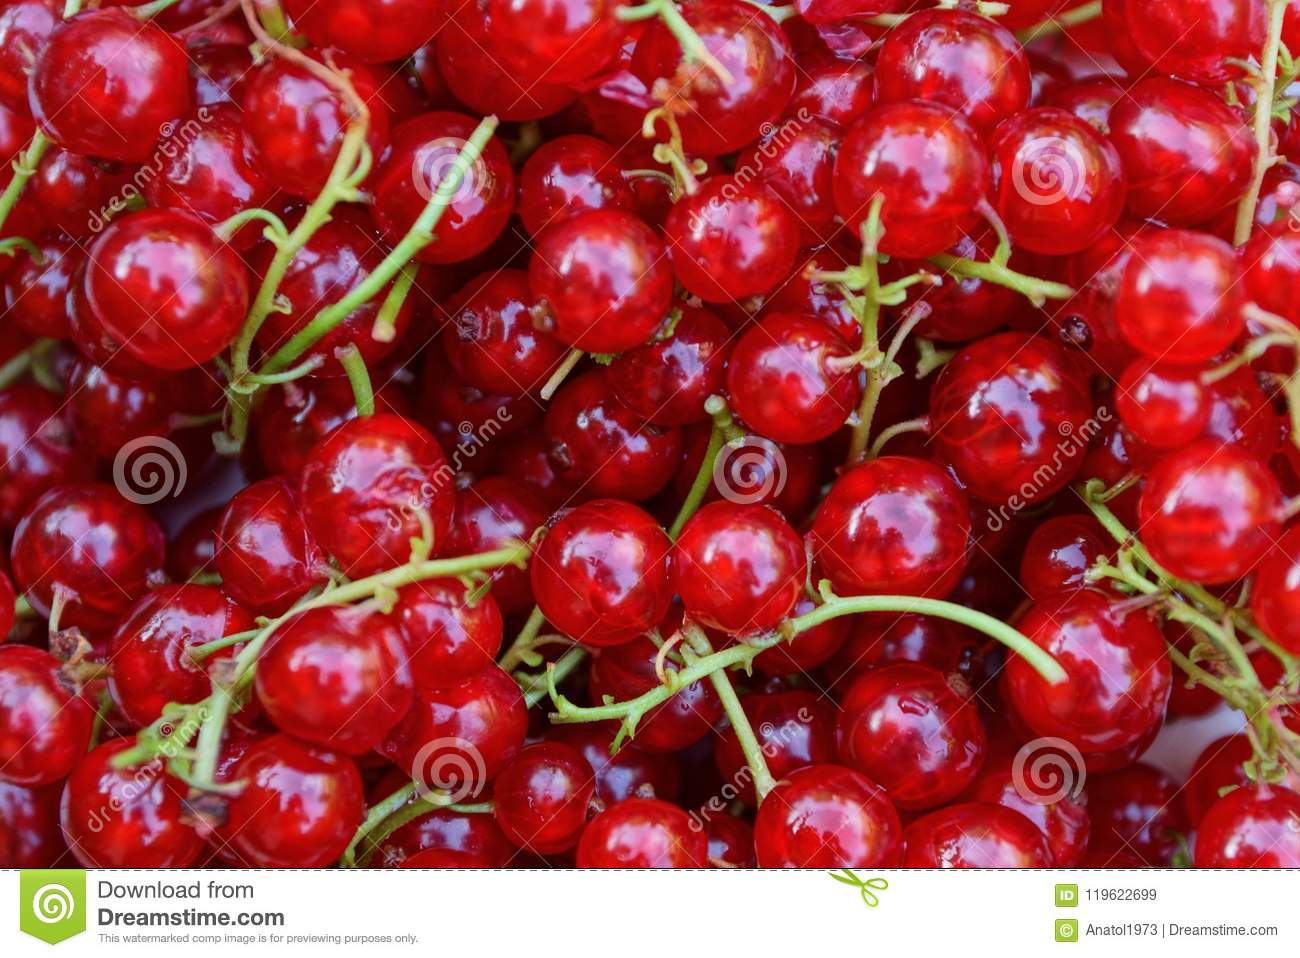 Dream interpretation Currant, what dreams Currant in a dream to see 38